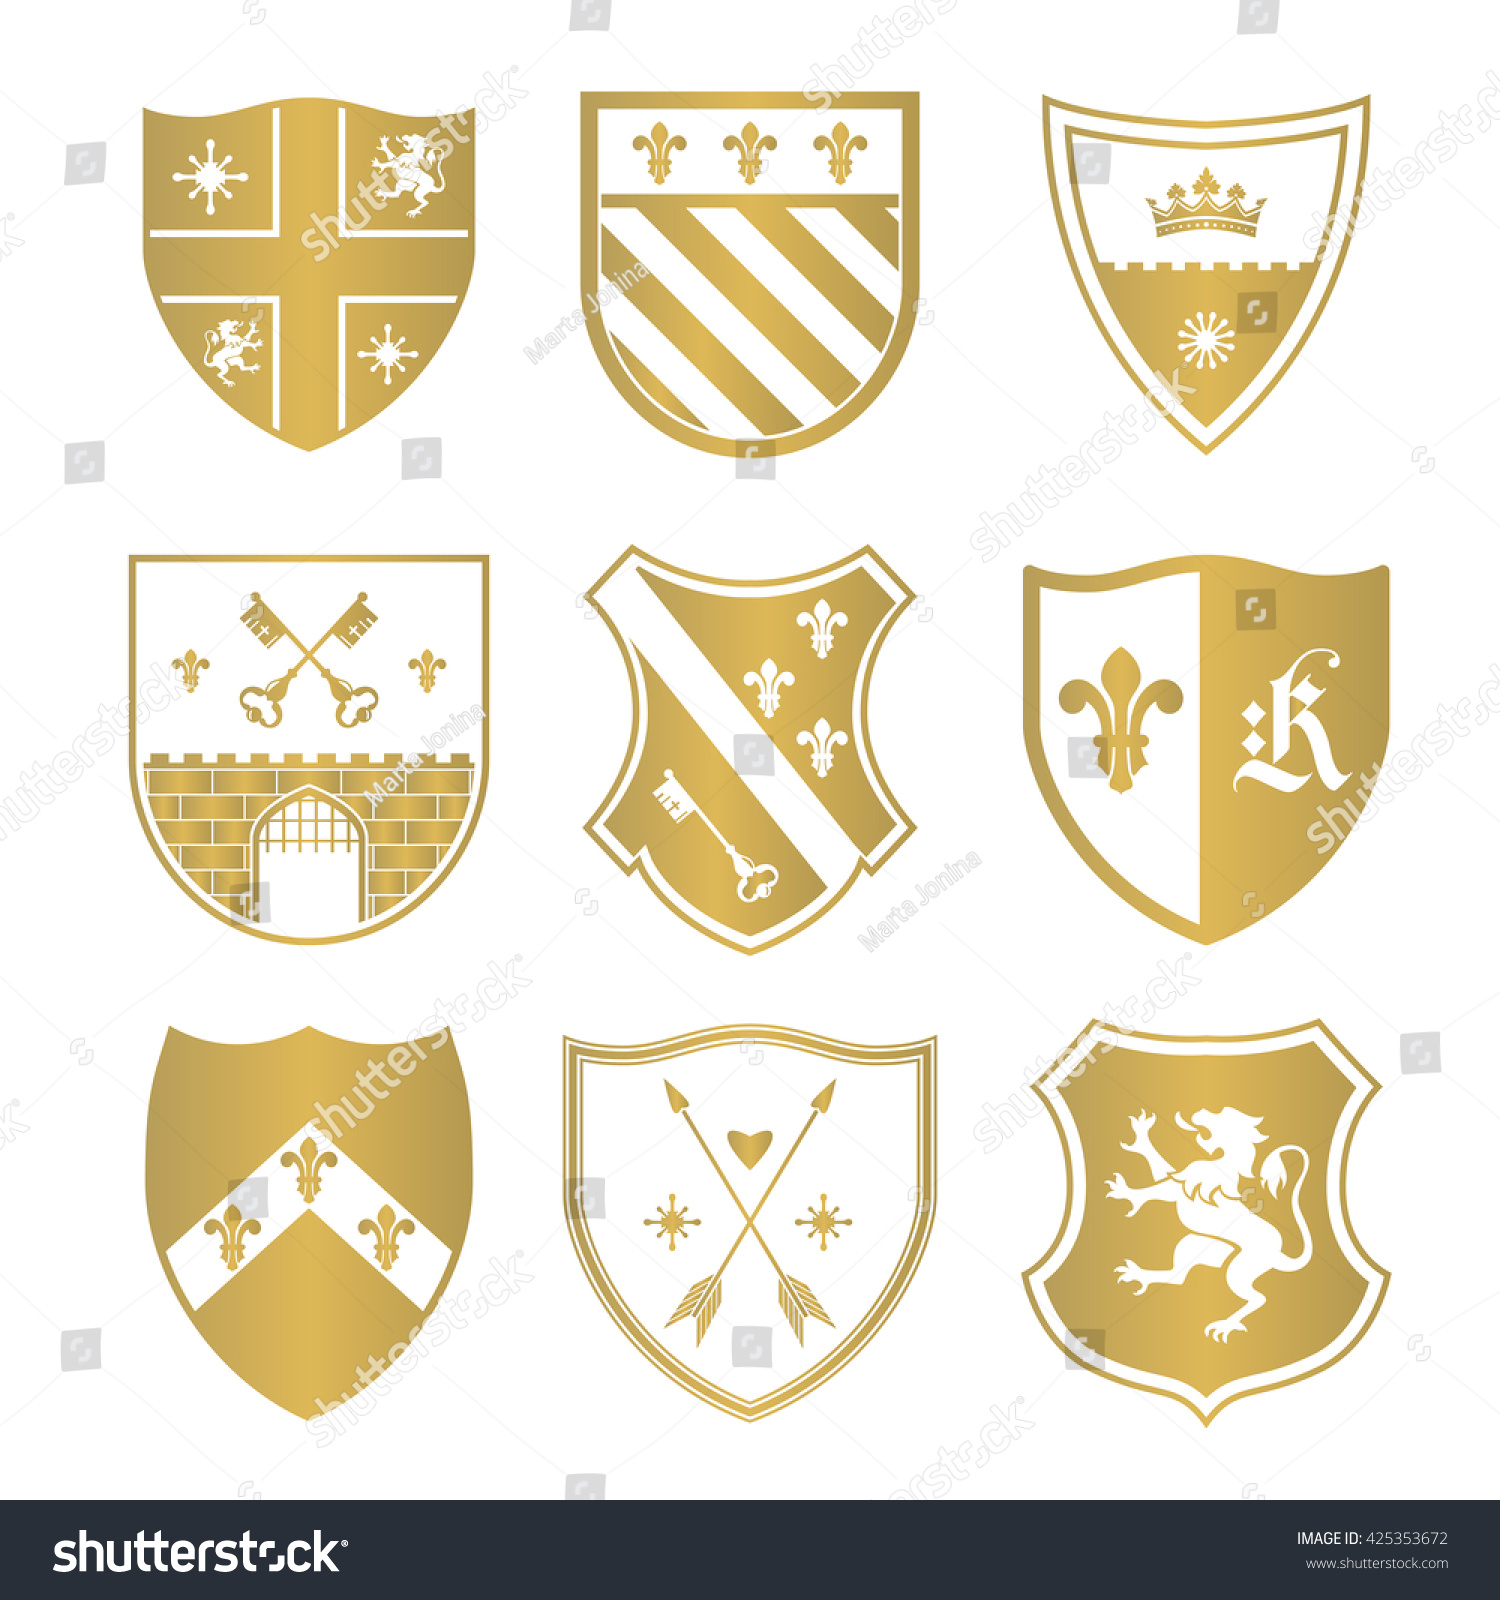 Coat Arms Silhouettes Signs Symbols Safety Stock Vector Royalty